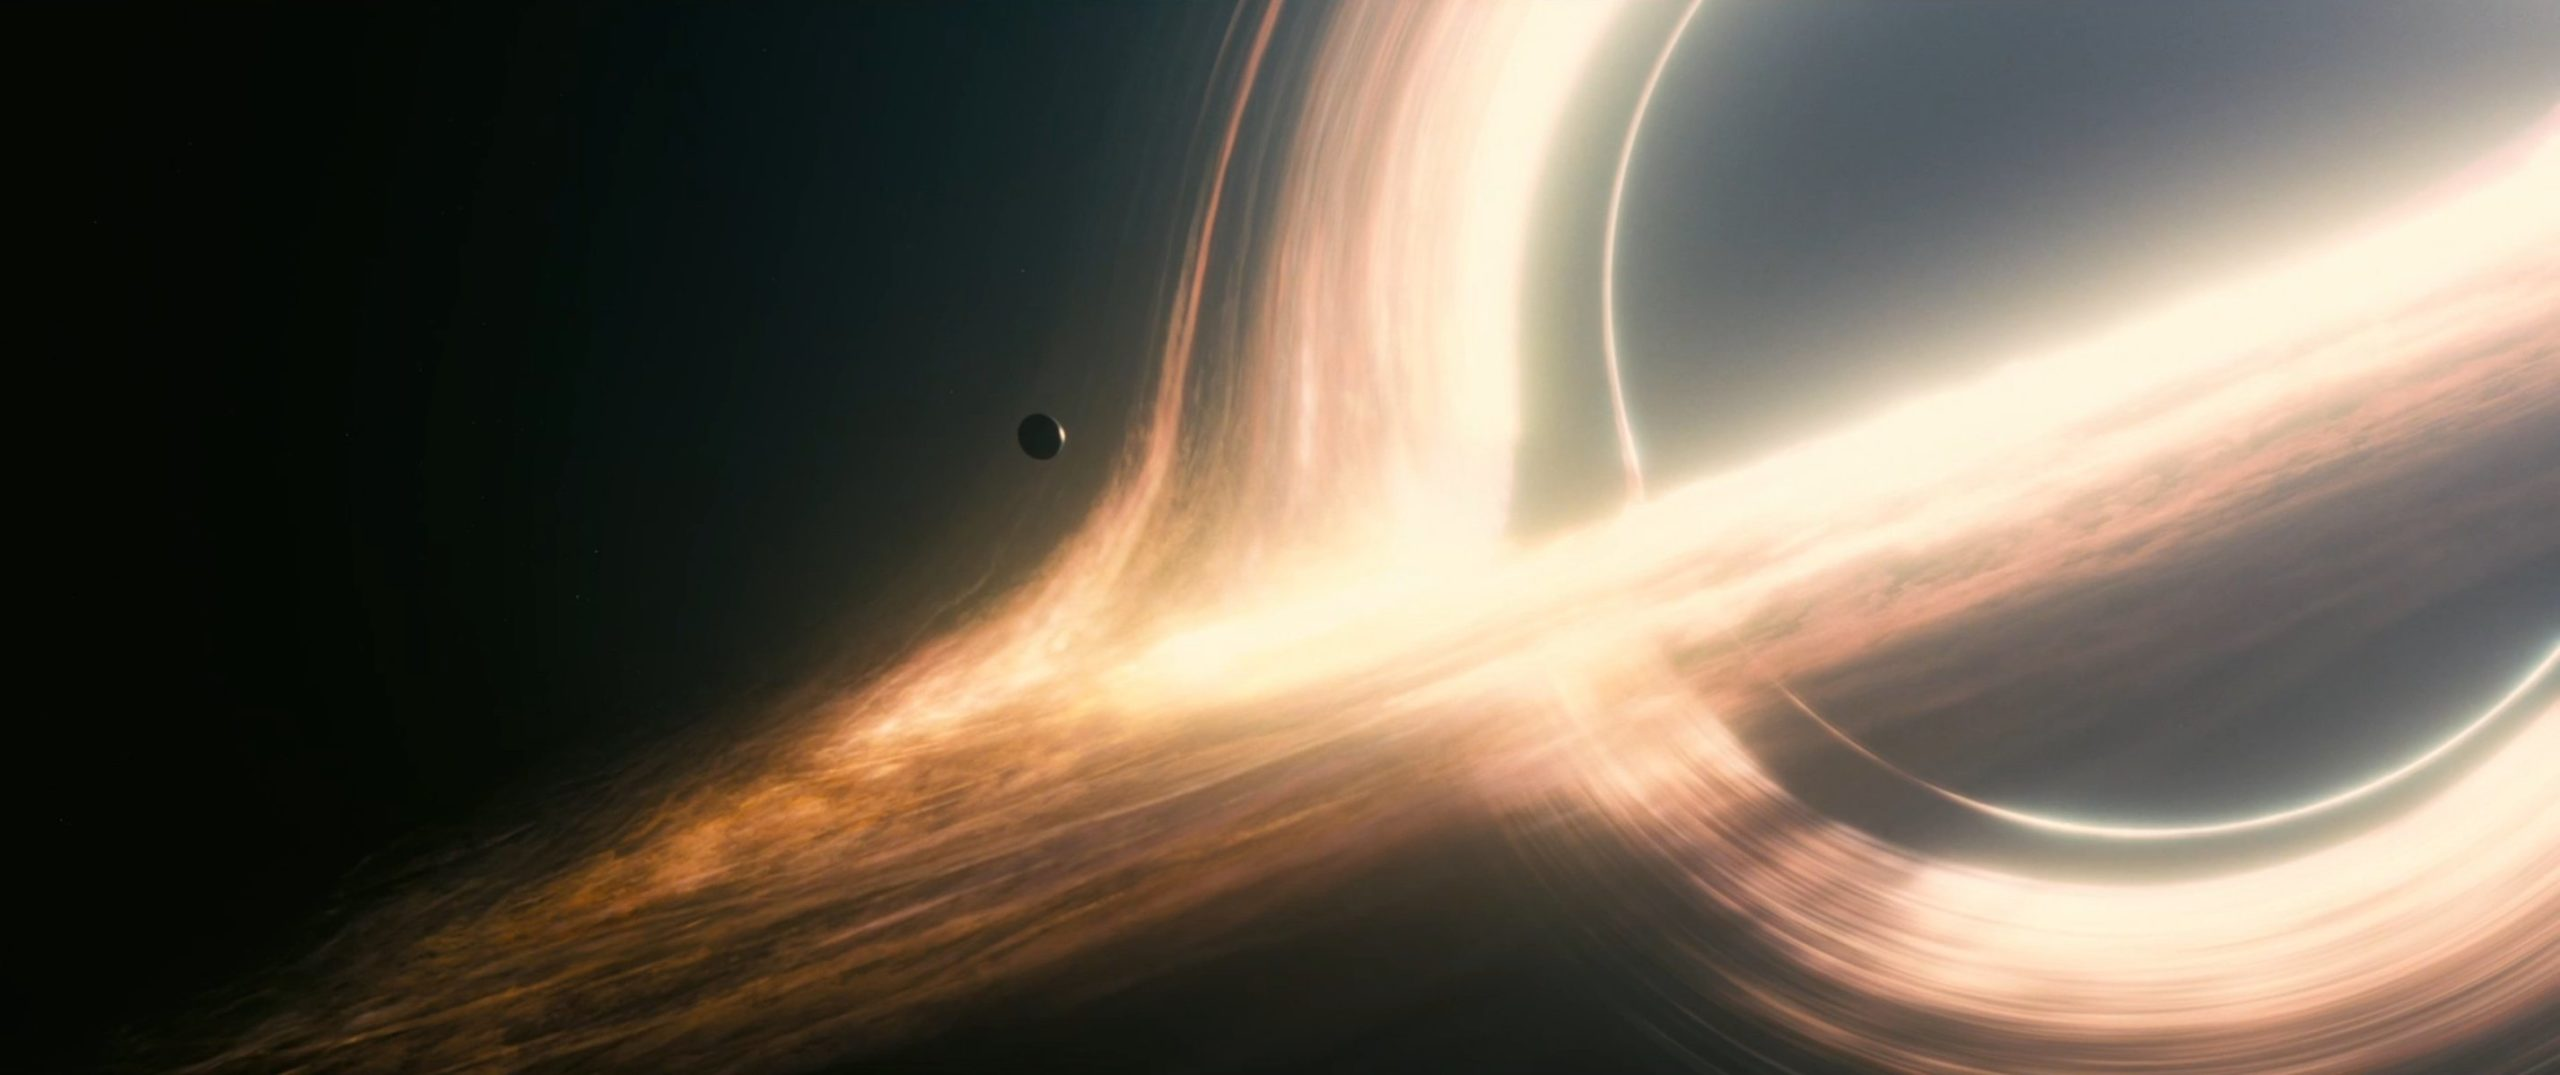 Photo de planètes dans le film Interstellar réalisé par Christopher Nolan